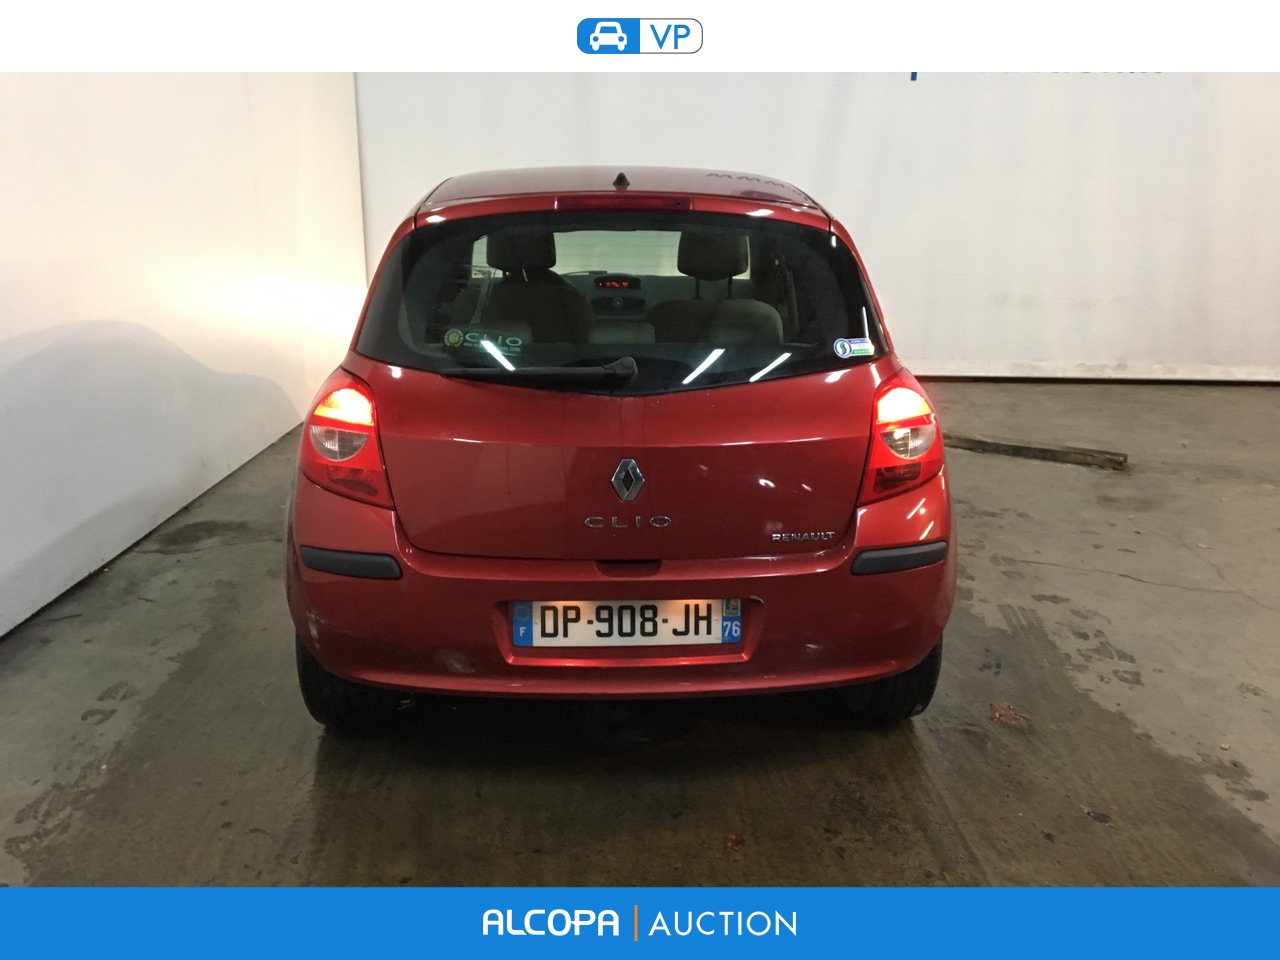 renault clio clio 1 5 dci70 confort expression 5p tours alcopa auction. Black Bedroom Furniture Sets. Home Design Ideas